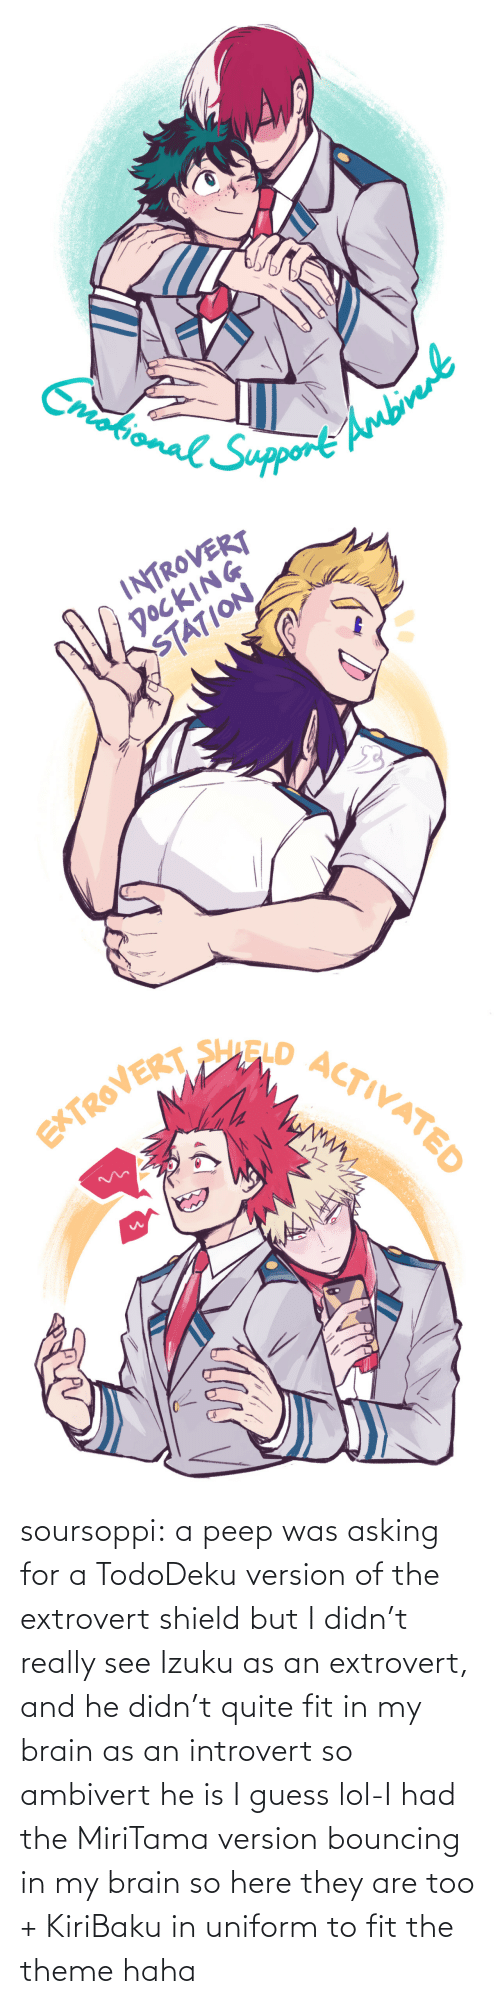 Version: soursoppi:  a peep was asking for a TodoDeku version of the extrovert shield but I didn't really see Izuku as an extrovert, and he didn't quite fit in my brain as an introvert so ambivert he is I guess lol-I had the MiriTama version bouncing in my brain so here they are too + KiriBaku in uniform to fit the theme haha